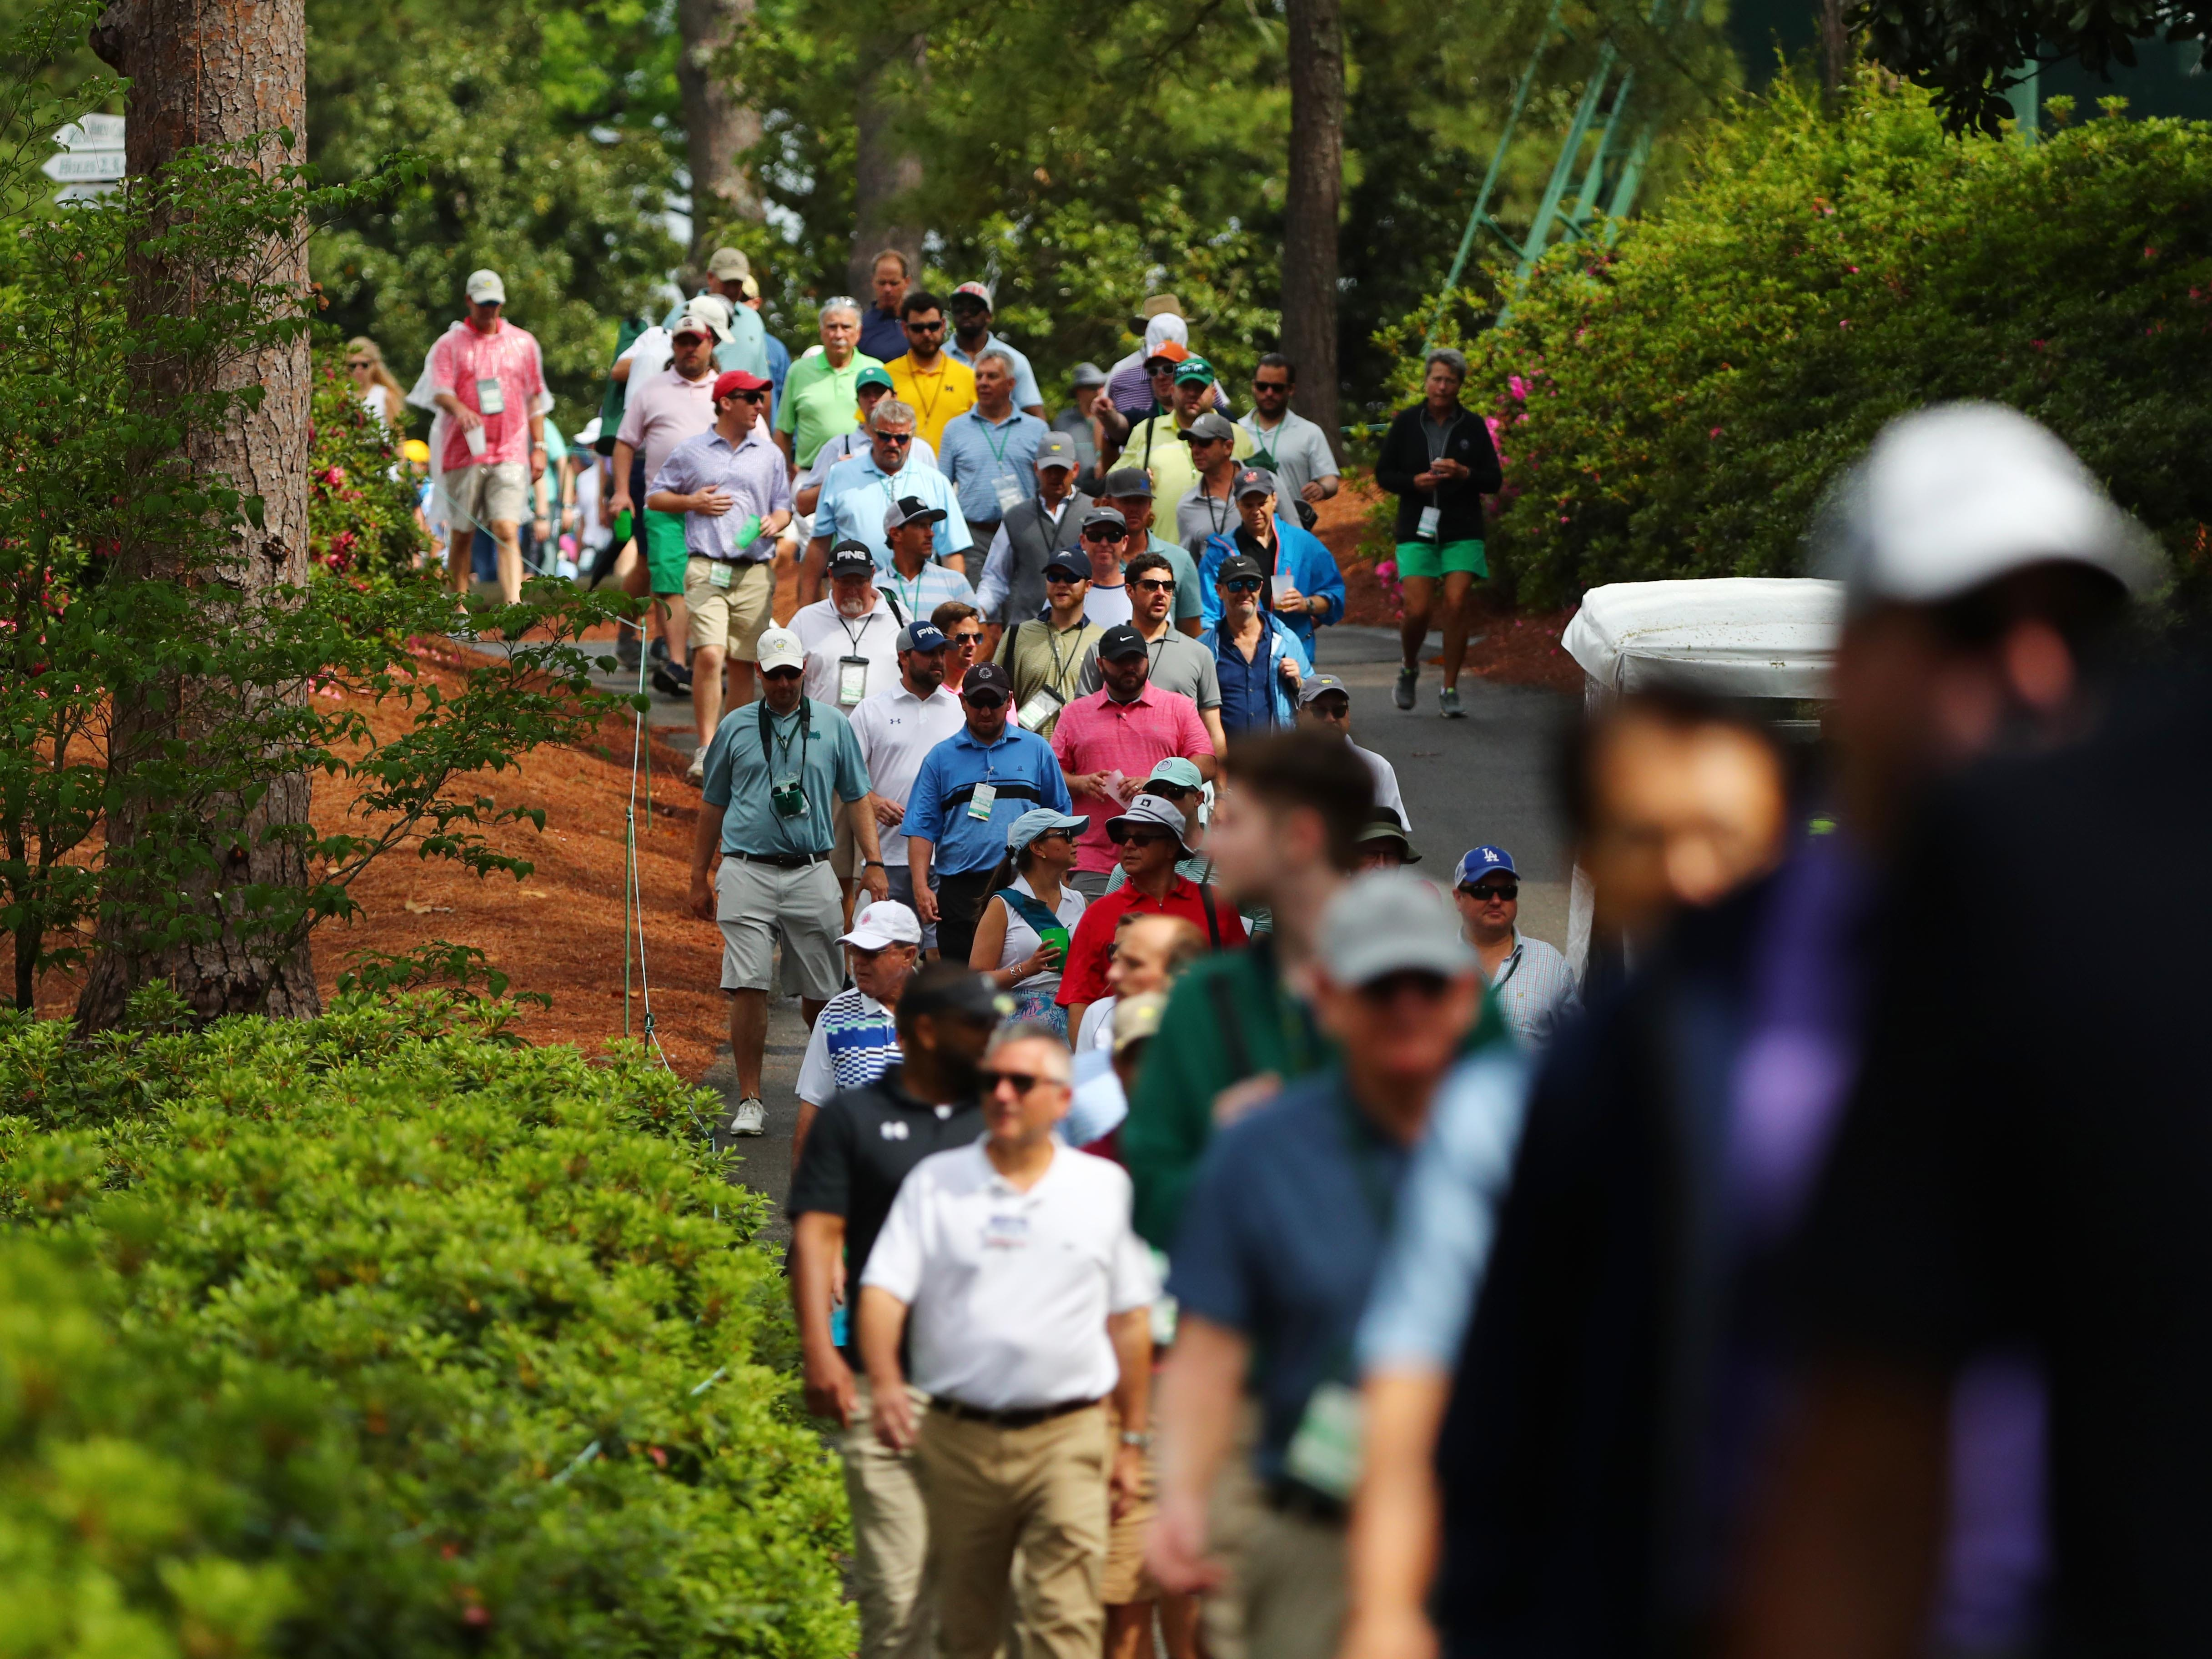 Apr 12, 2019; Augusta, GA, USA; Patrons walk along the 2nd hole during the second round of The Masters golf tournament at Augusta National Golf Club. Mandatory Credit: Rob Schumacher-USA TODAY Sports